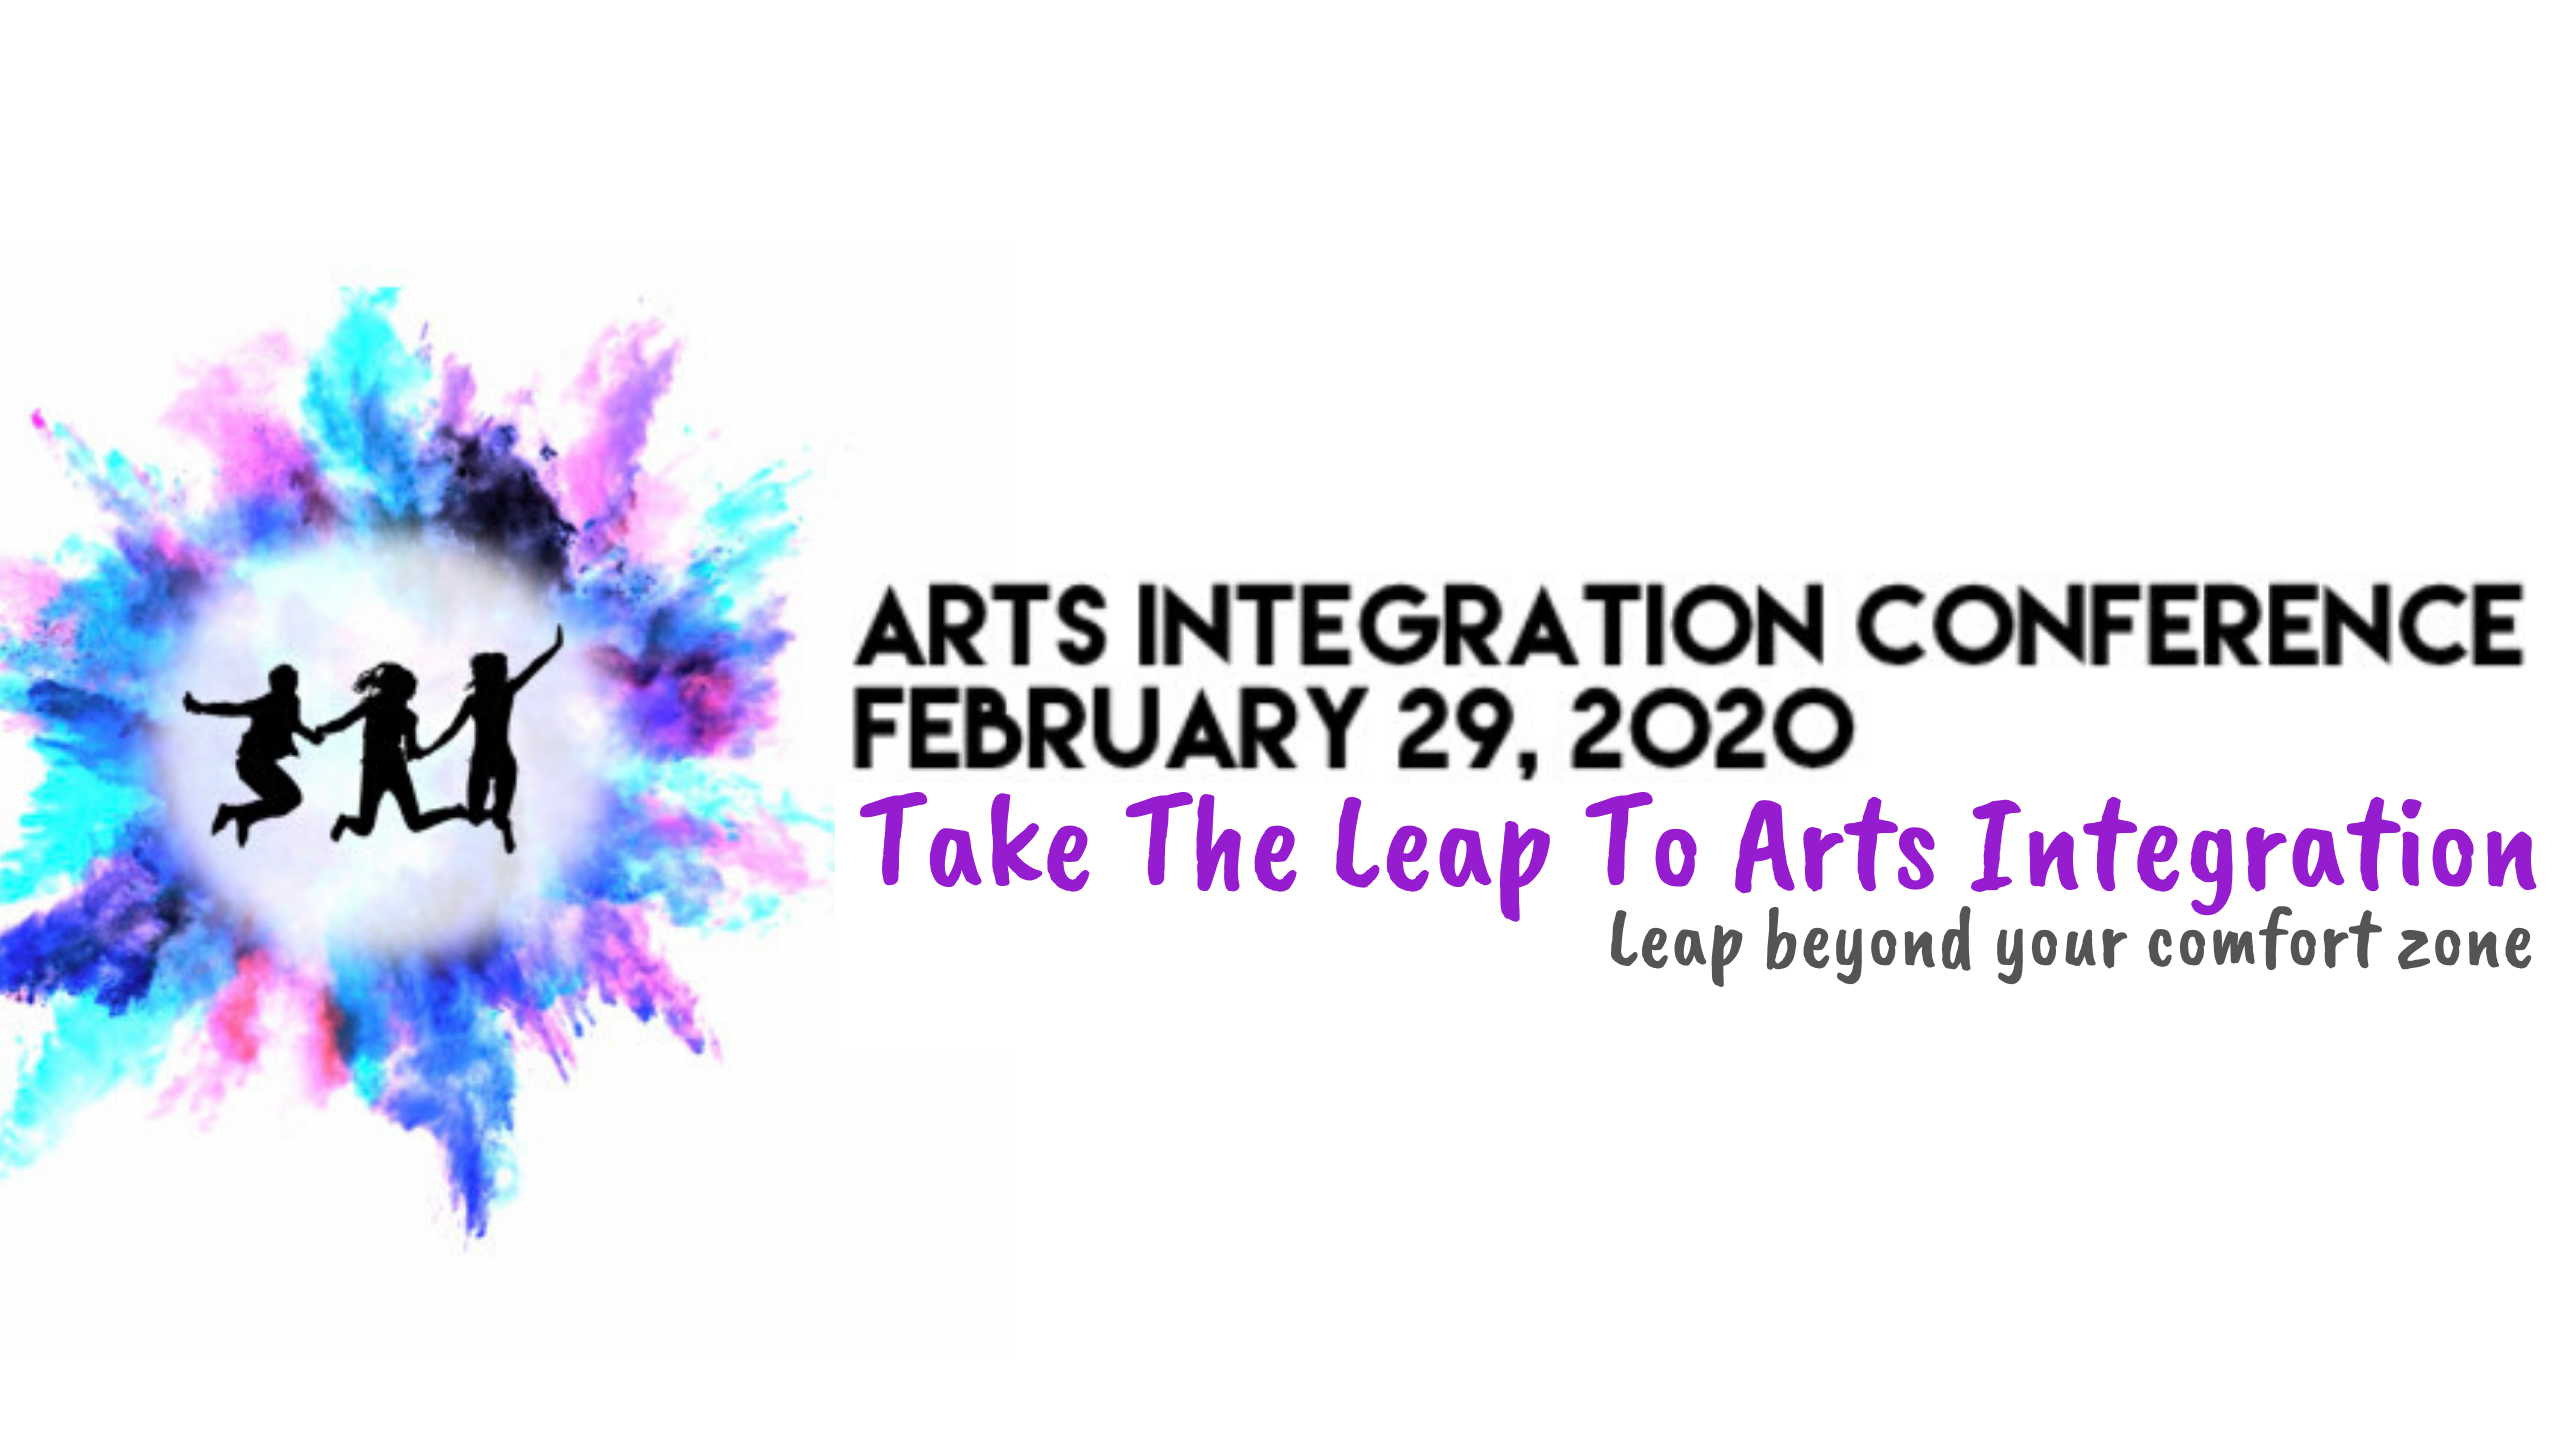 2020 Arts Integration Conference